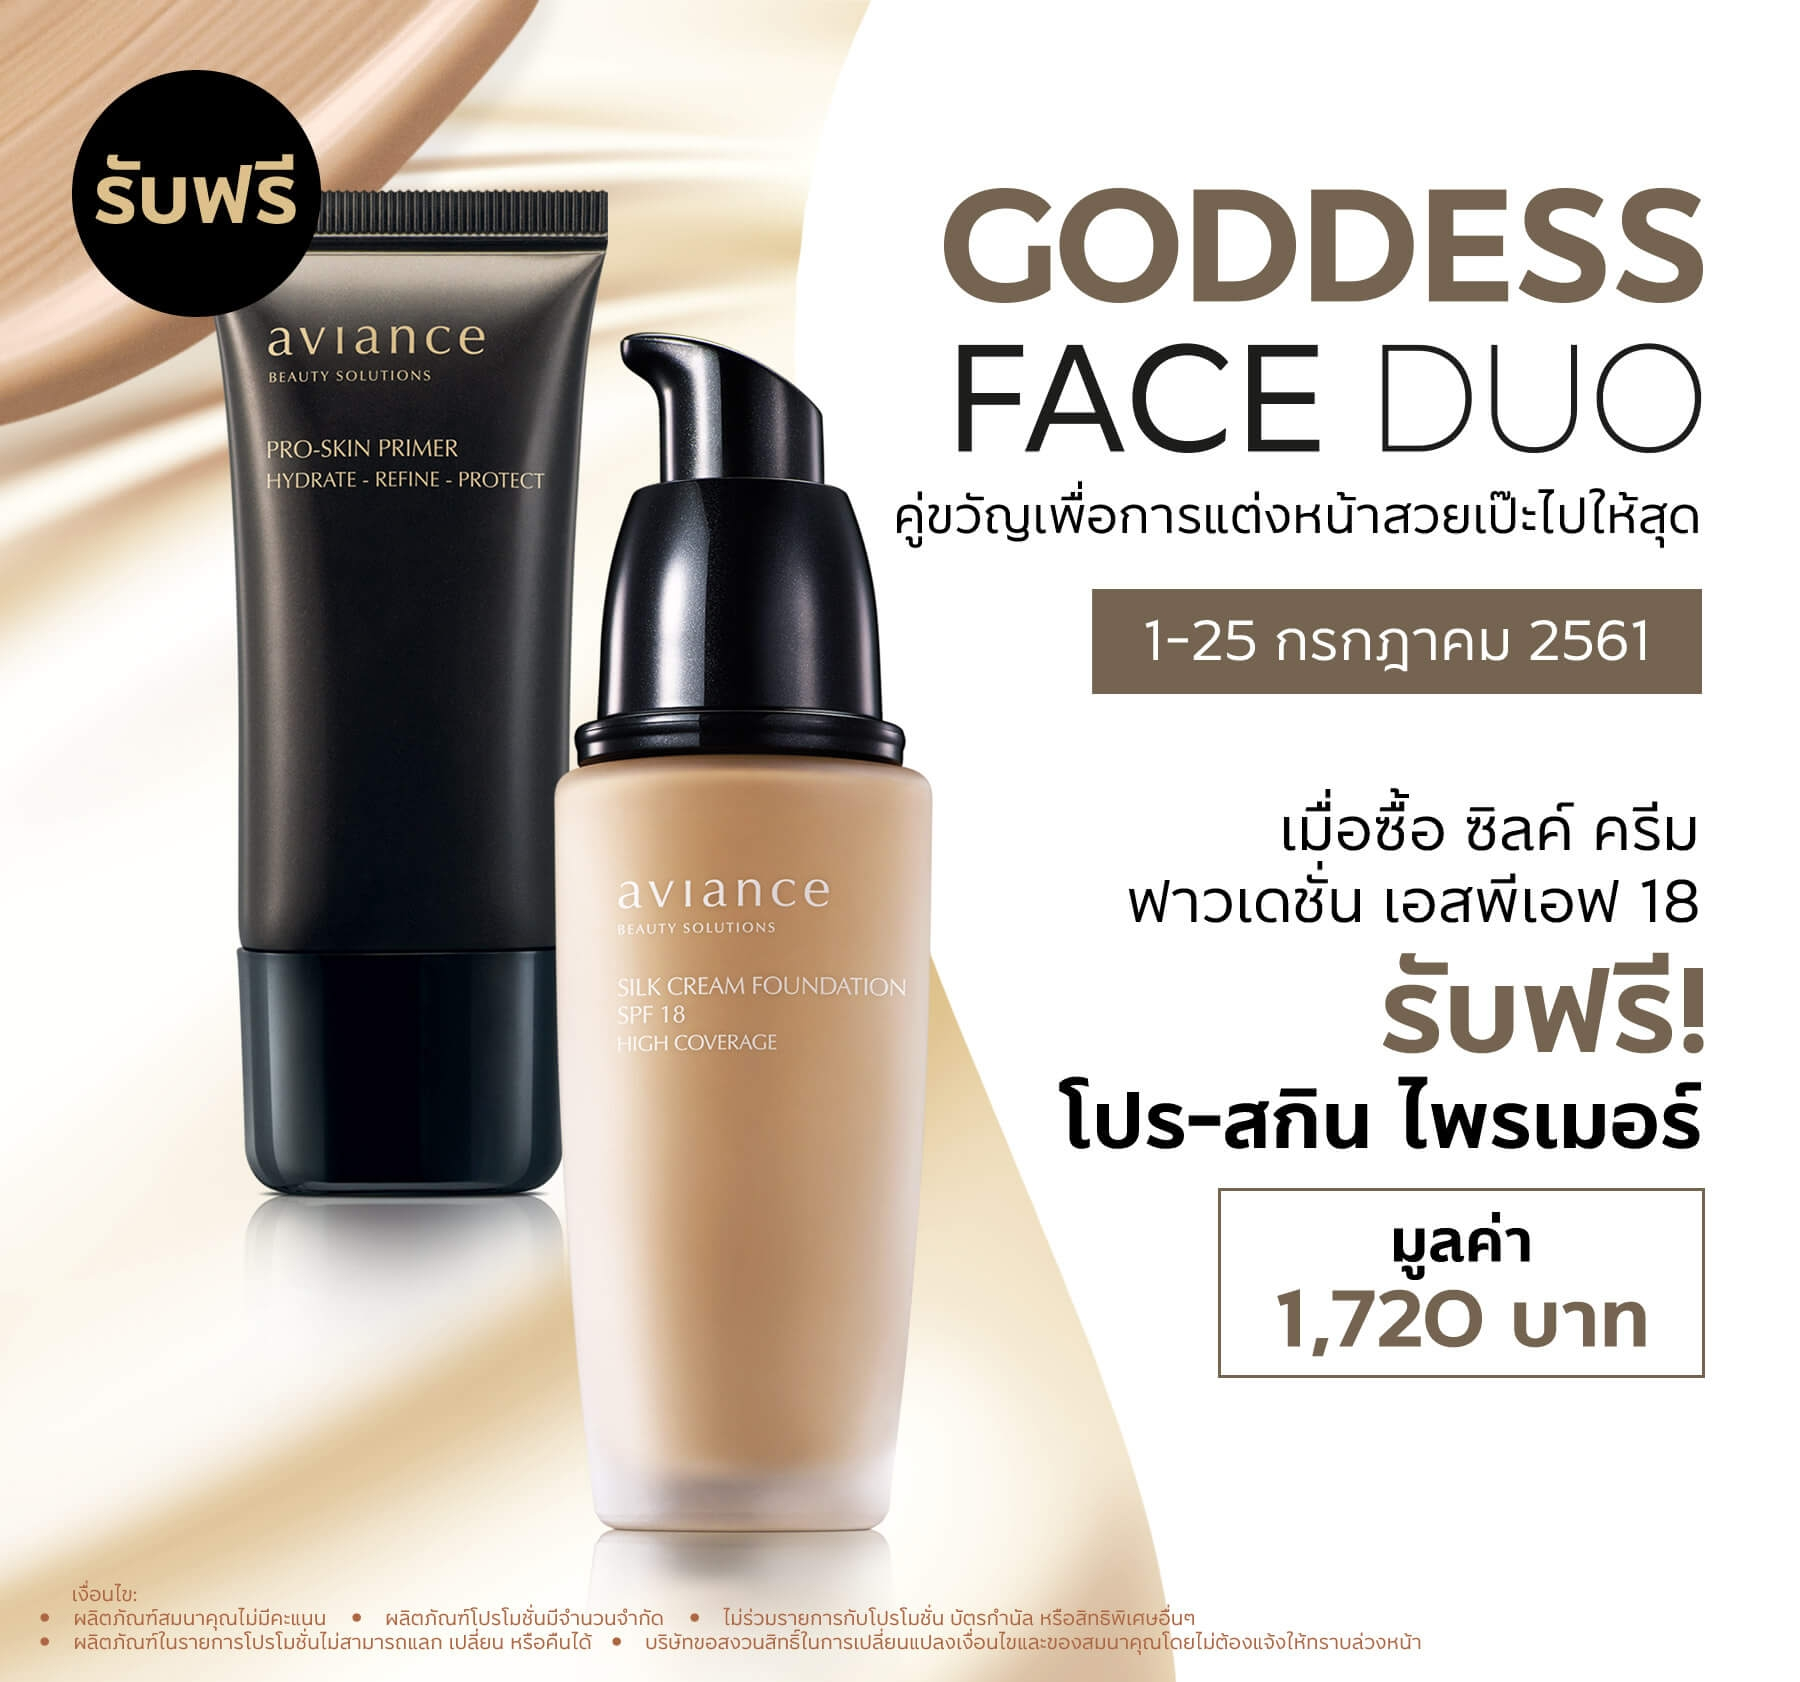 Goddess Face Duo